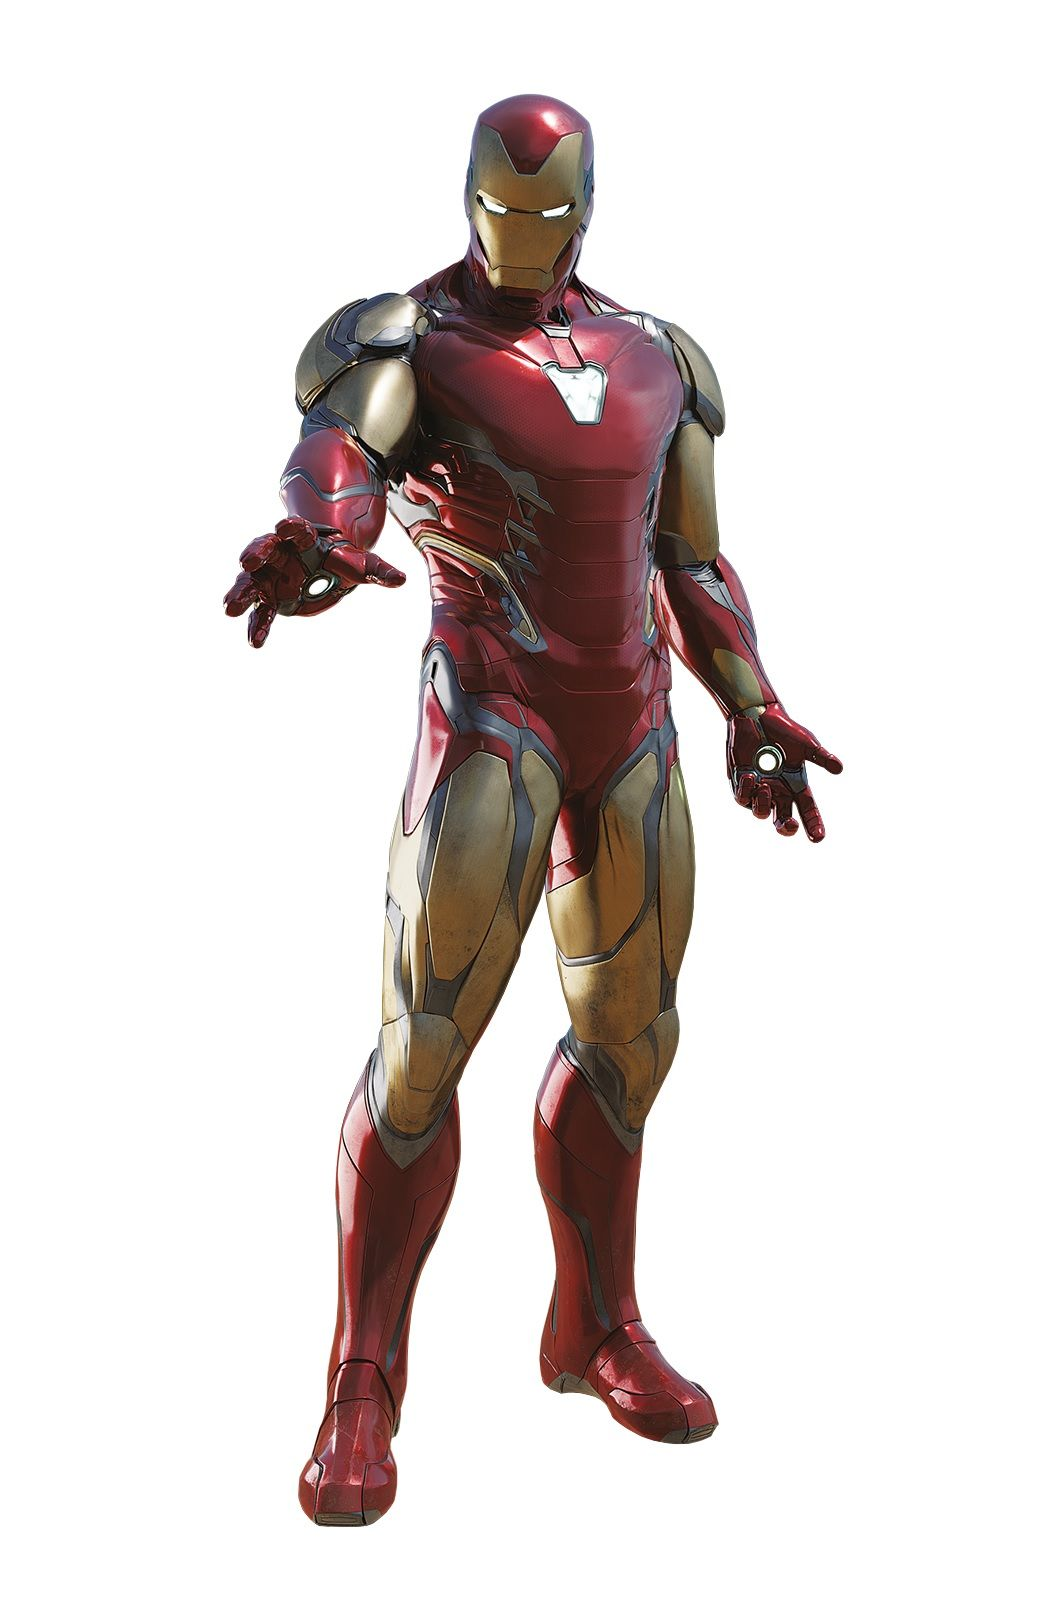 What Is Your View Opinion Over The Mark 85 Armor Iron Man Iron Man Armor Iron Man Suit